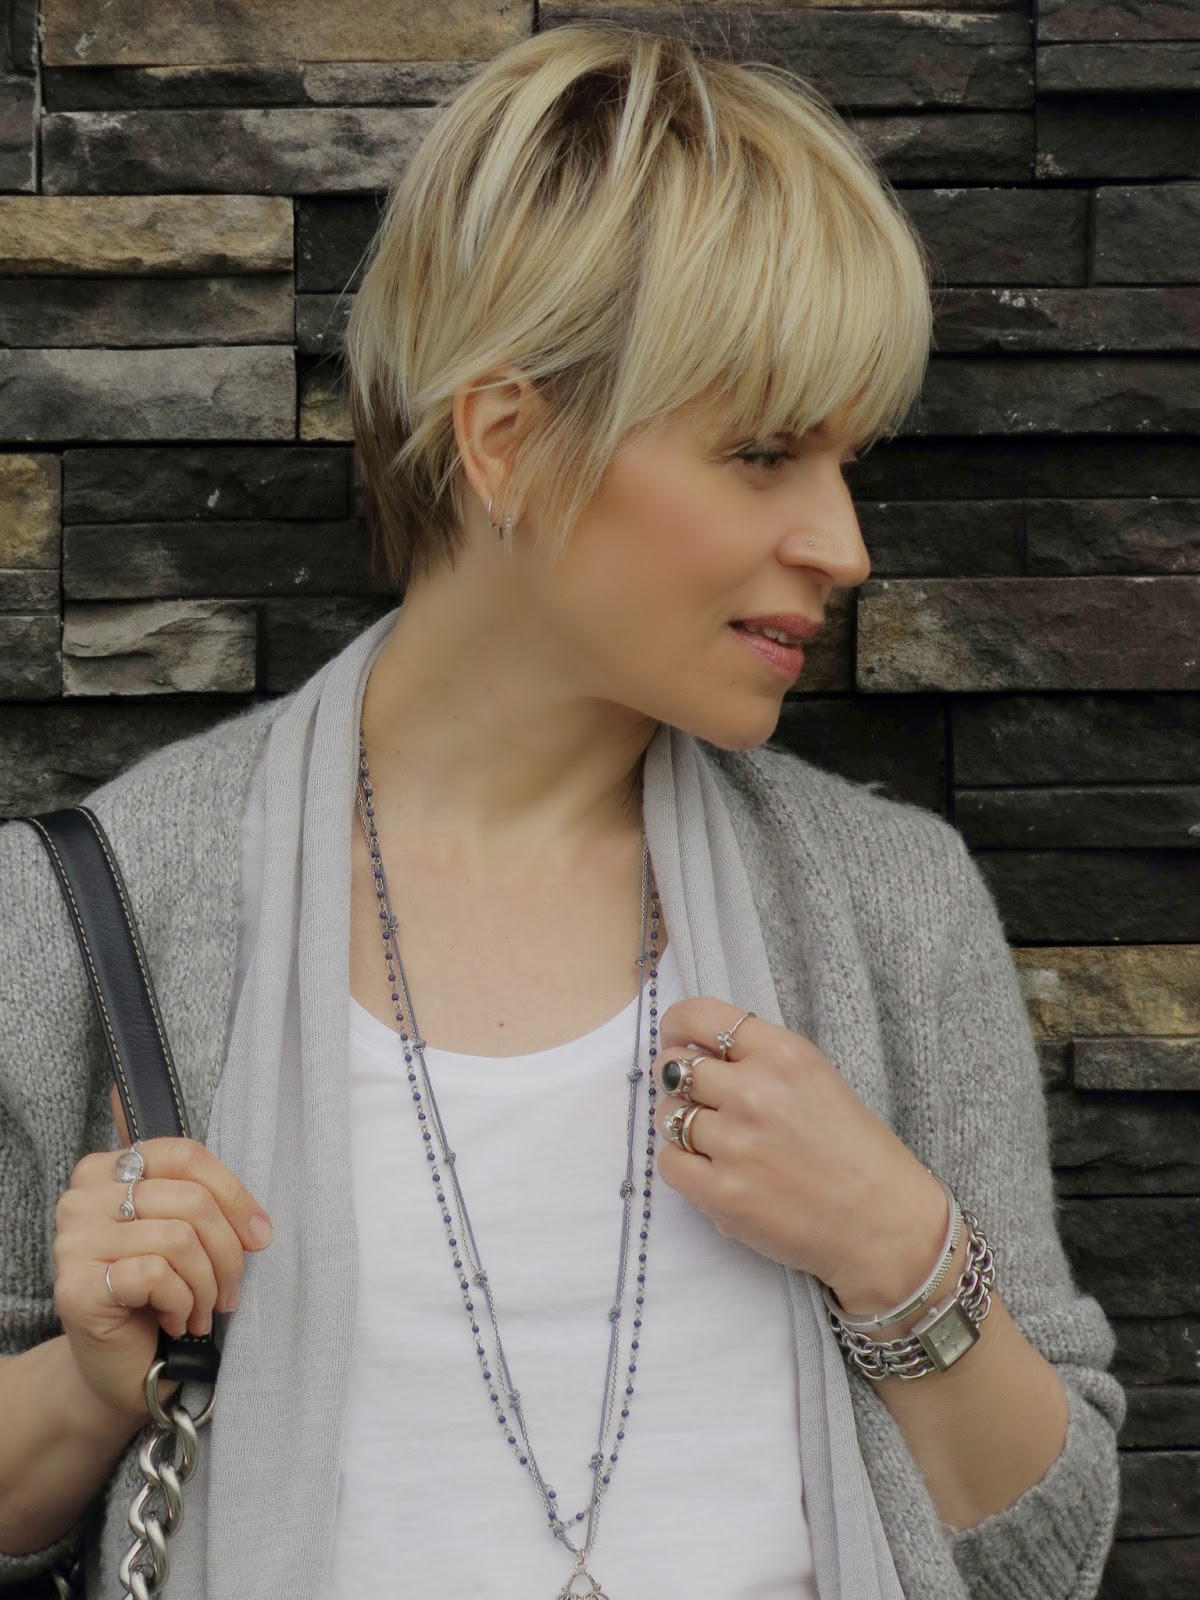 women's short hairstyle and jewellery accessories